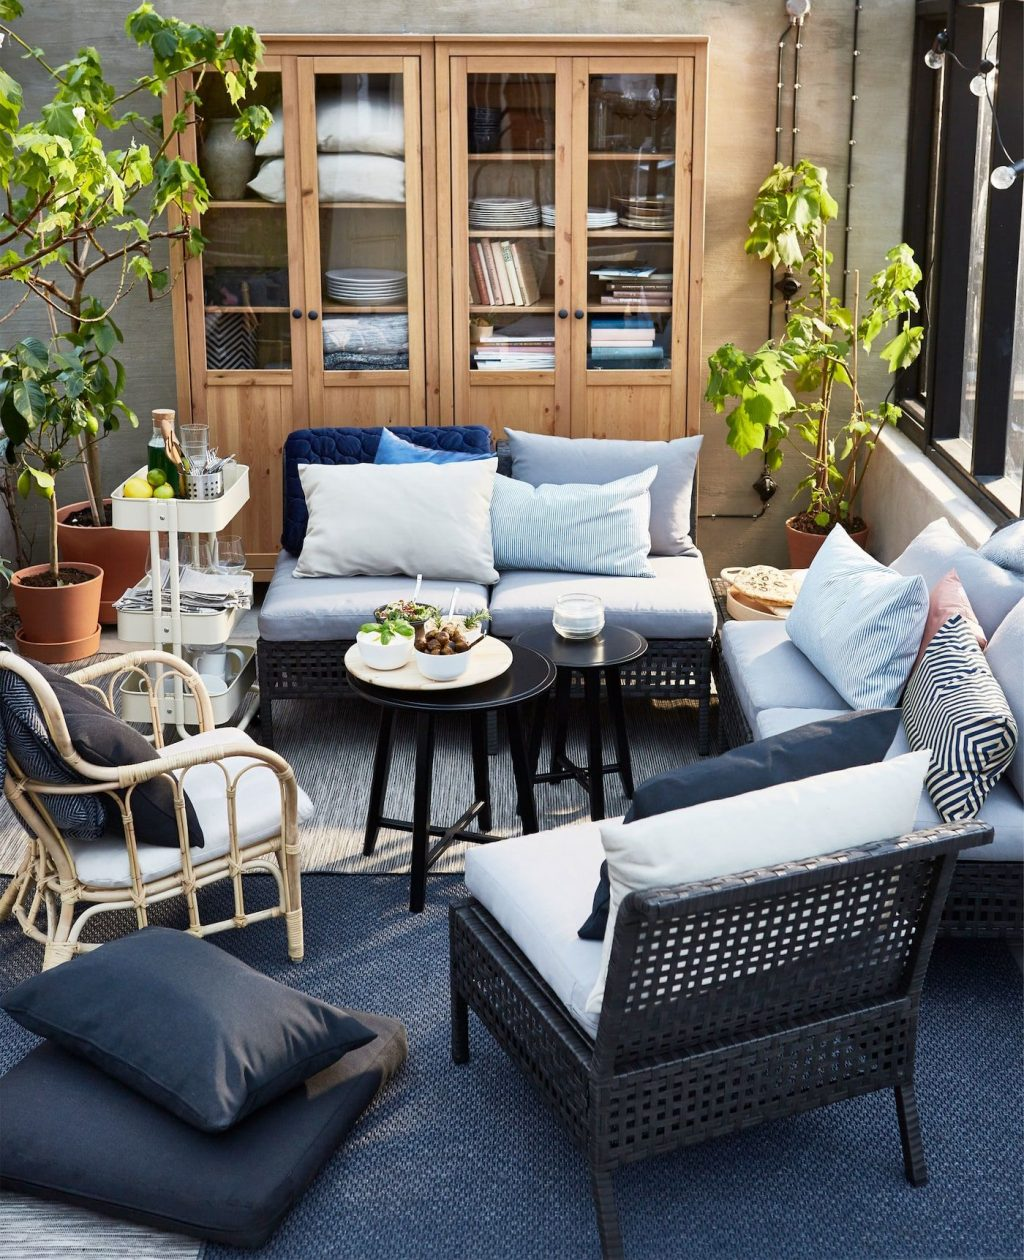 Make A Changeable Personal Outdoor Space In 2019 Gift Shop Ikea